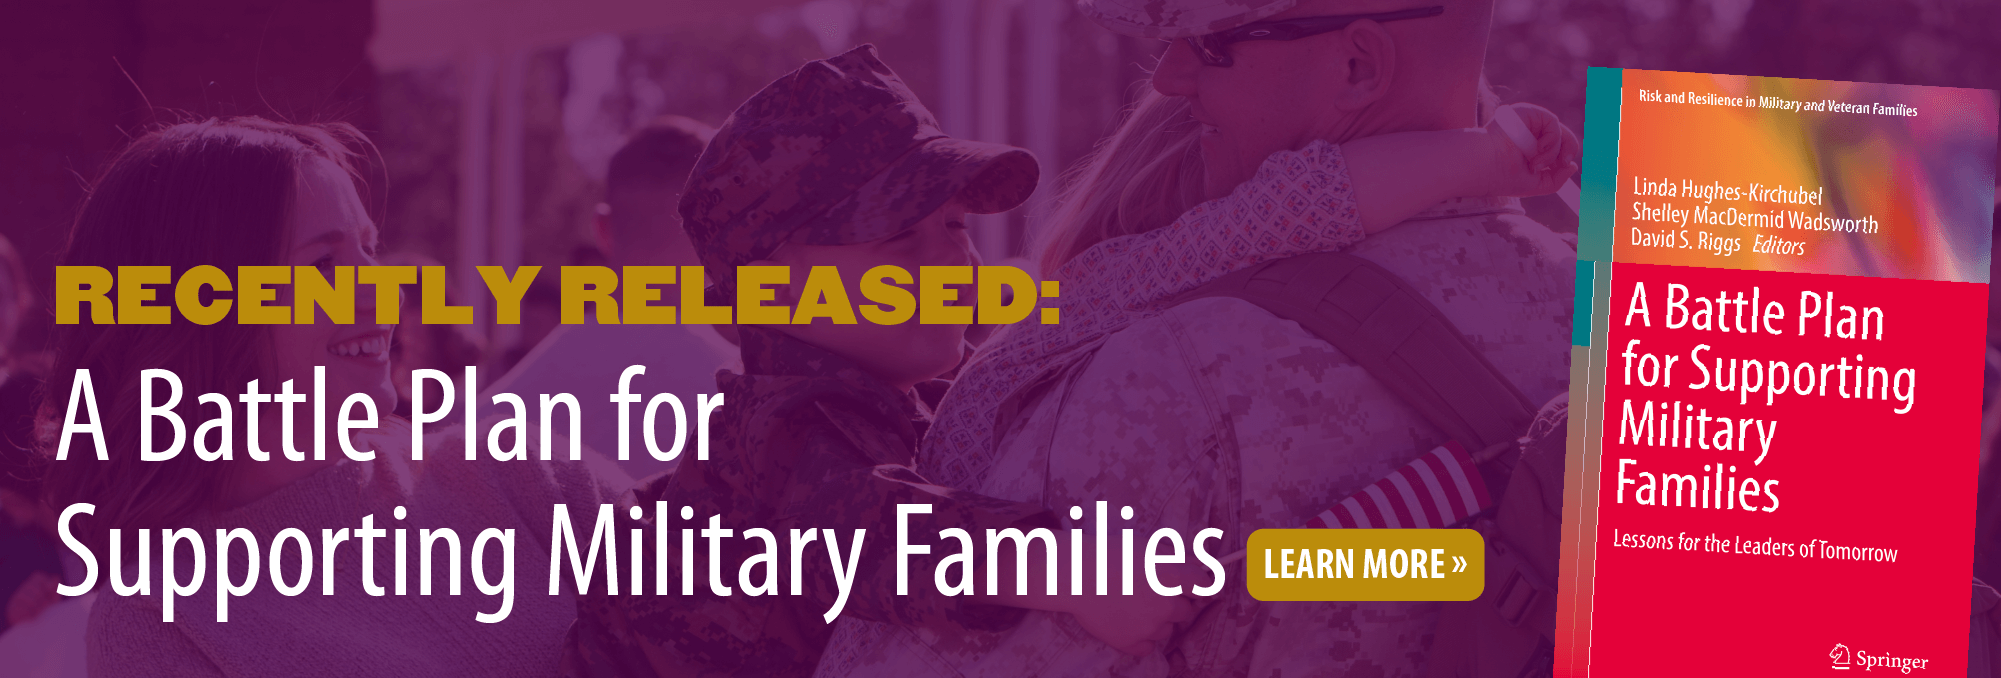 Recently released: A Battle Plan for Supporting Military Families